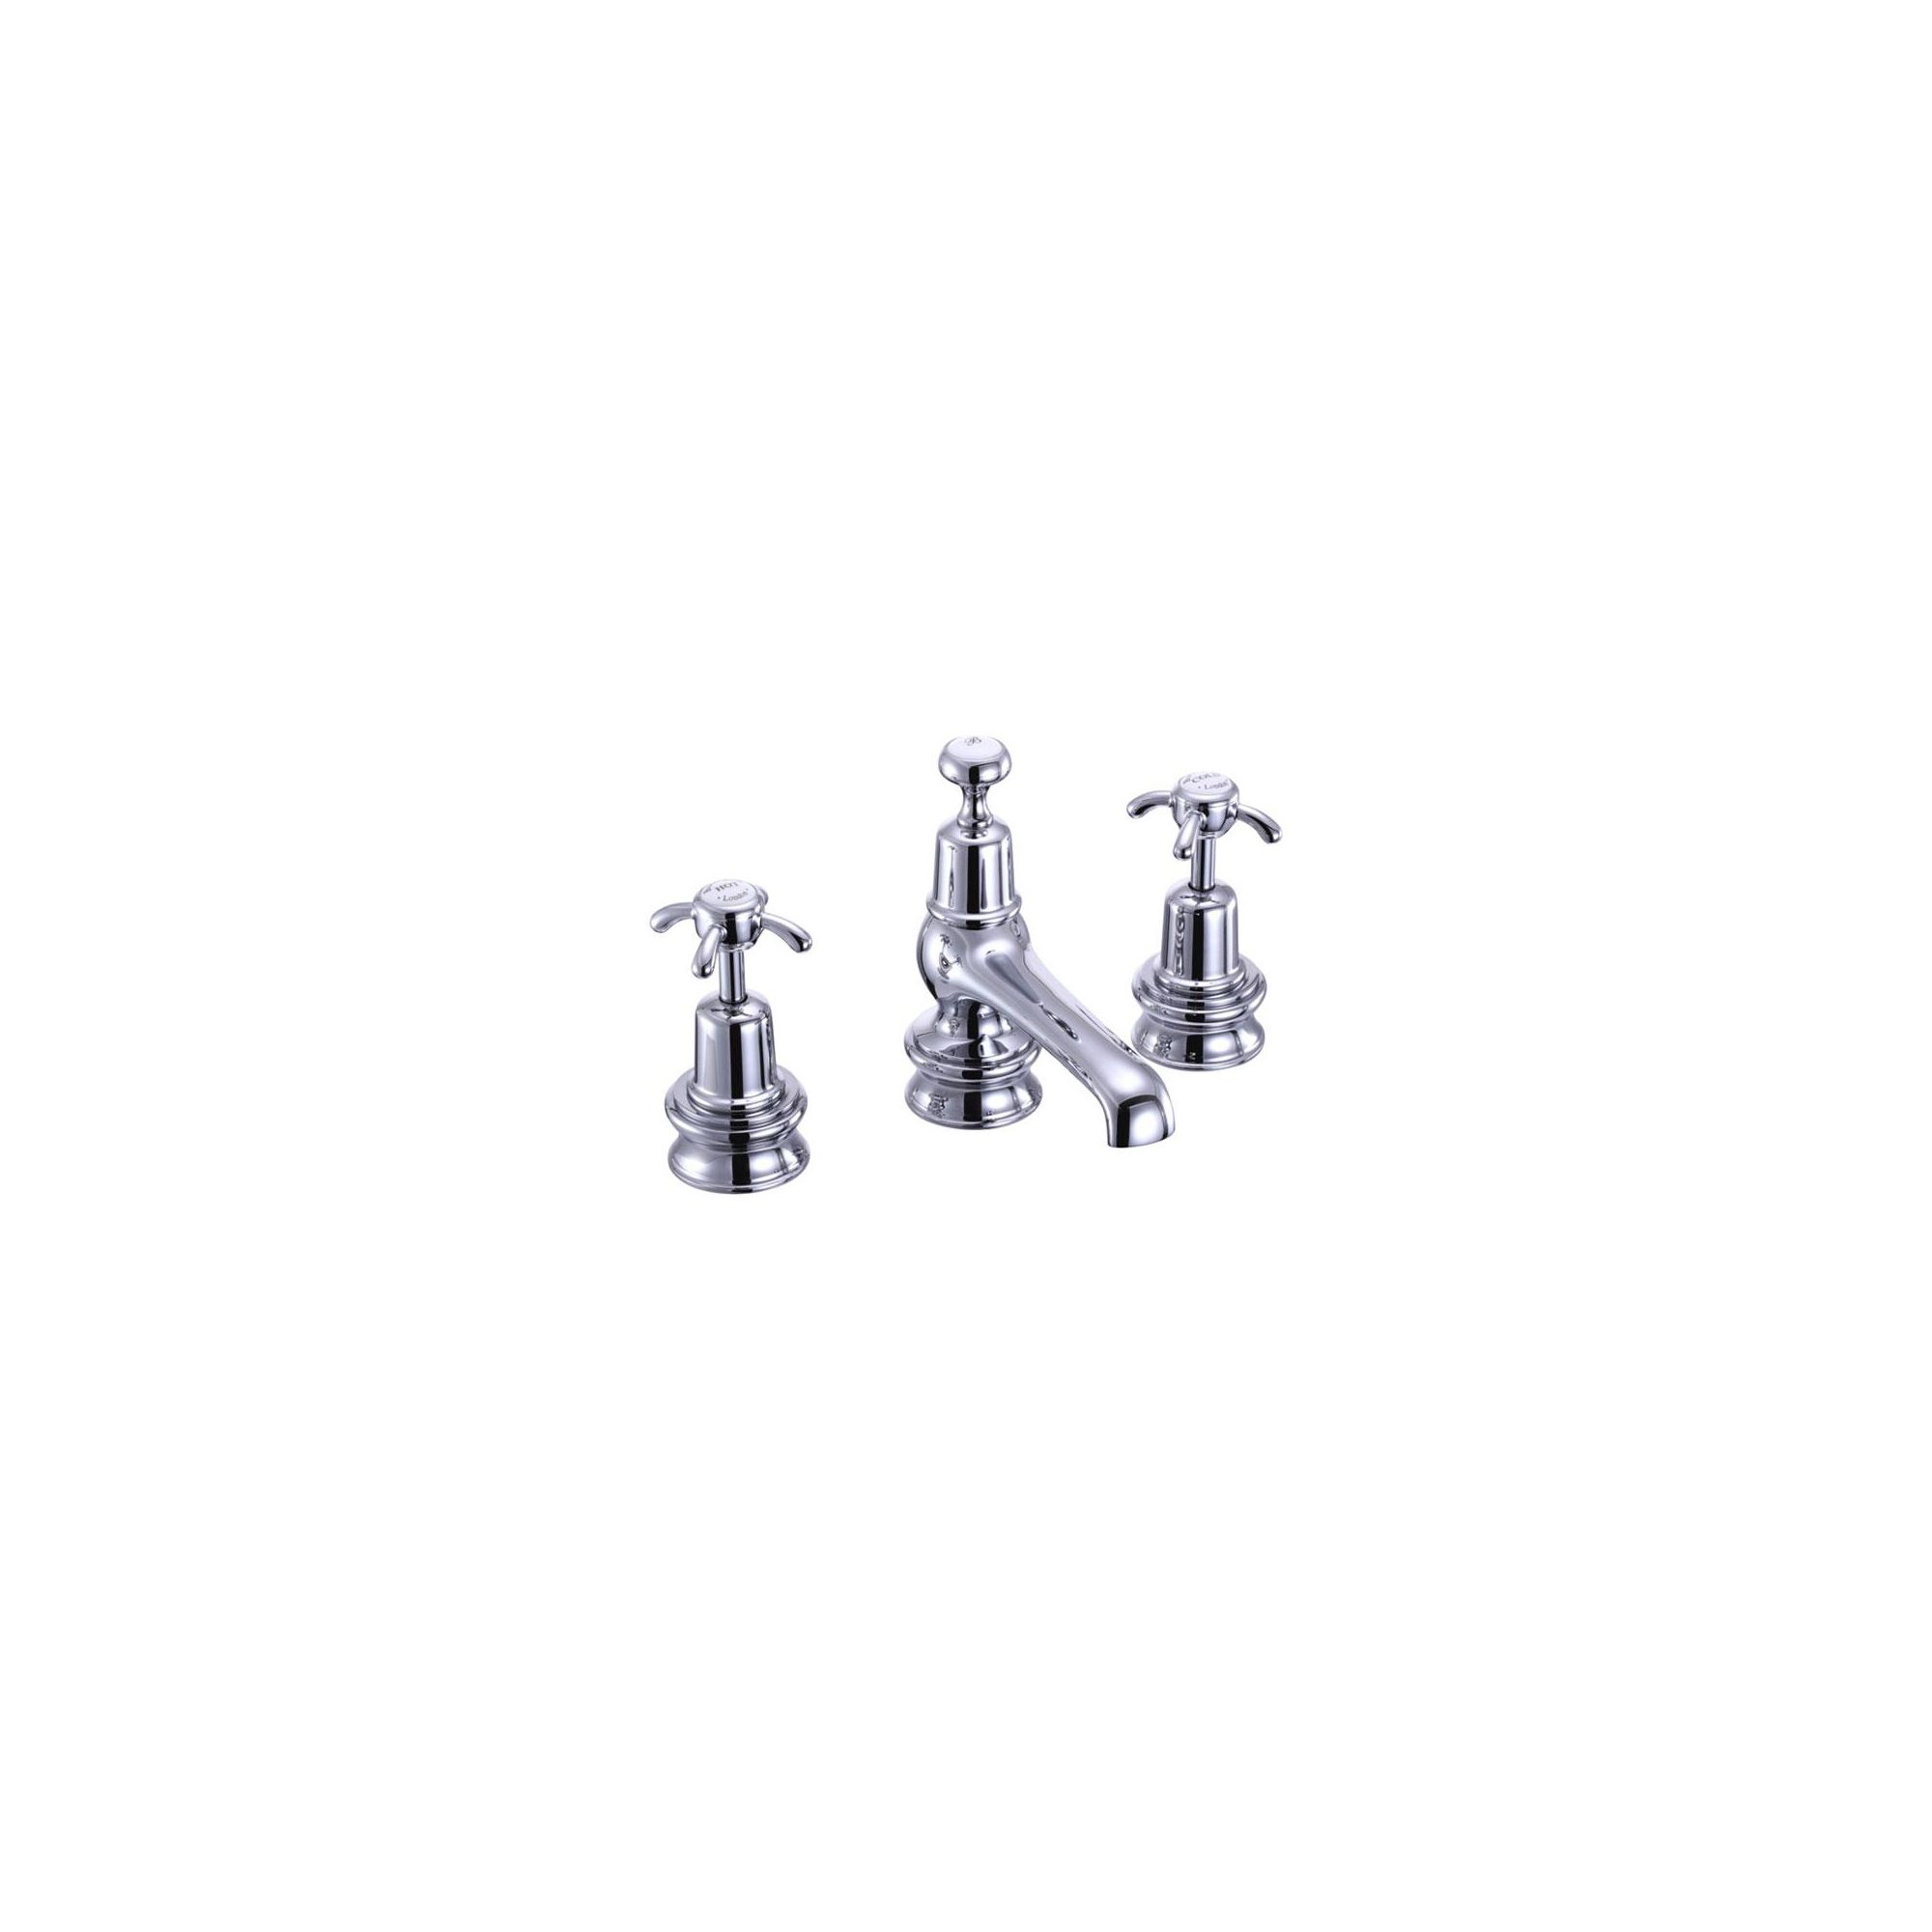 Burlington Anglesey Regent 3 Hole Basin Mixer Tap with Pop-Up Waste, Deck Mounted, Chrome at Tesco Direct